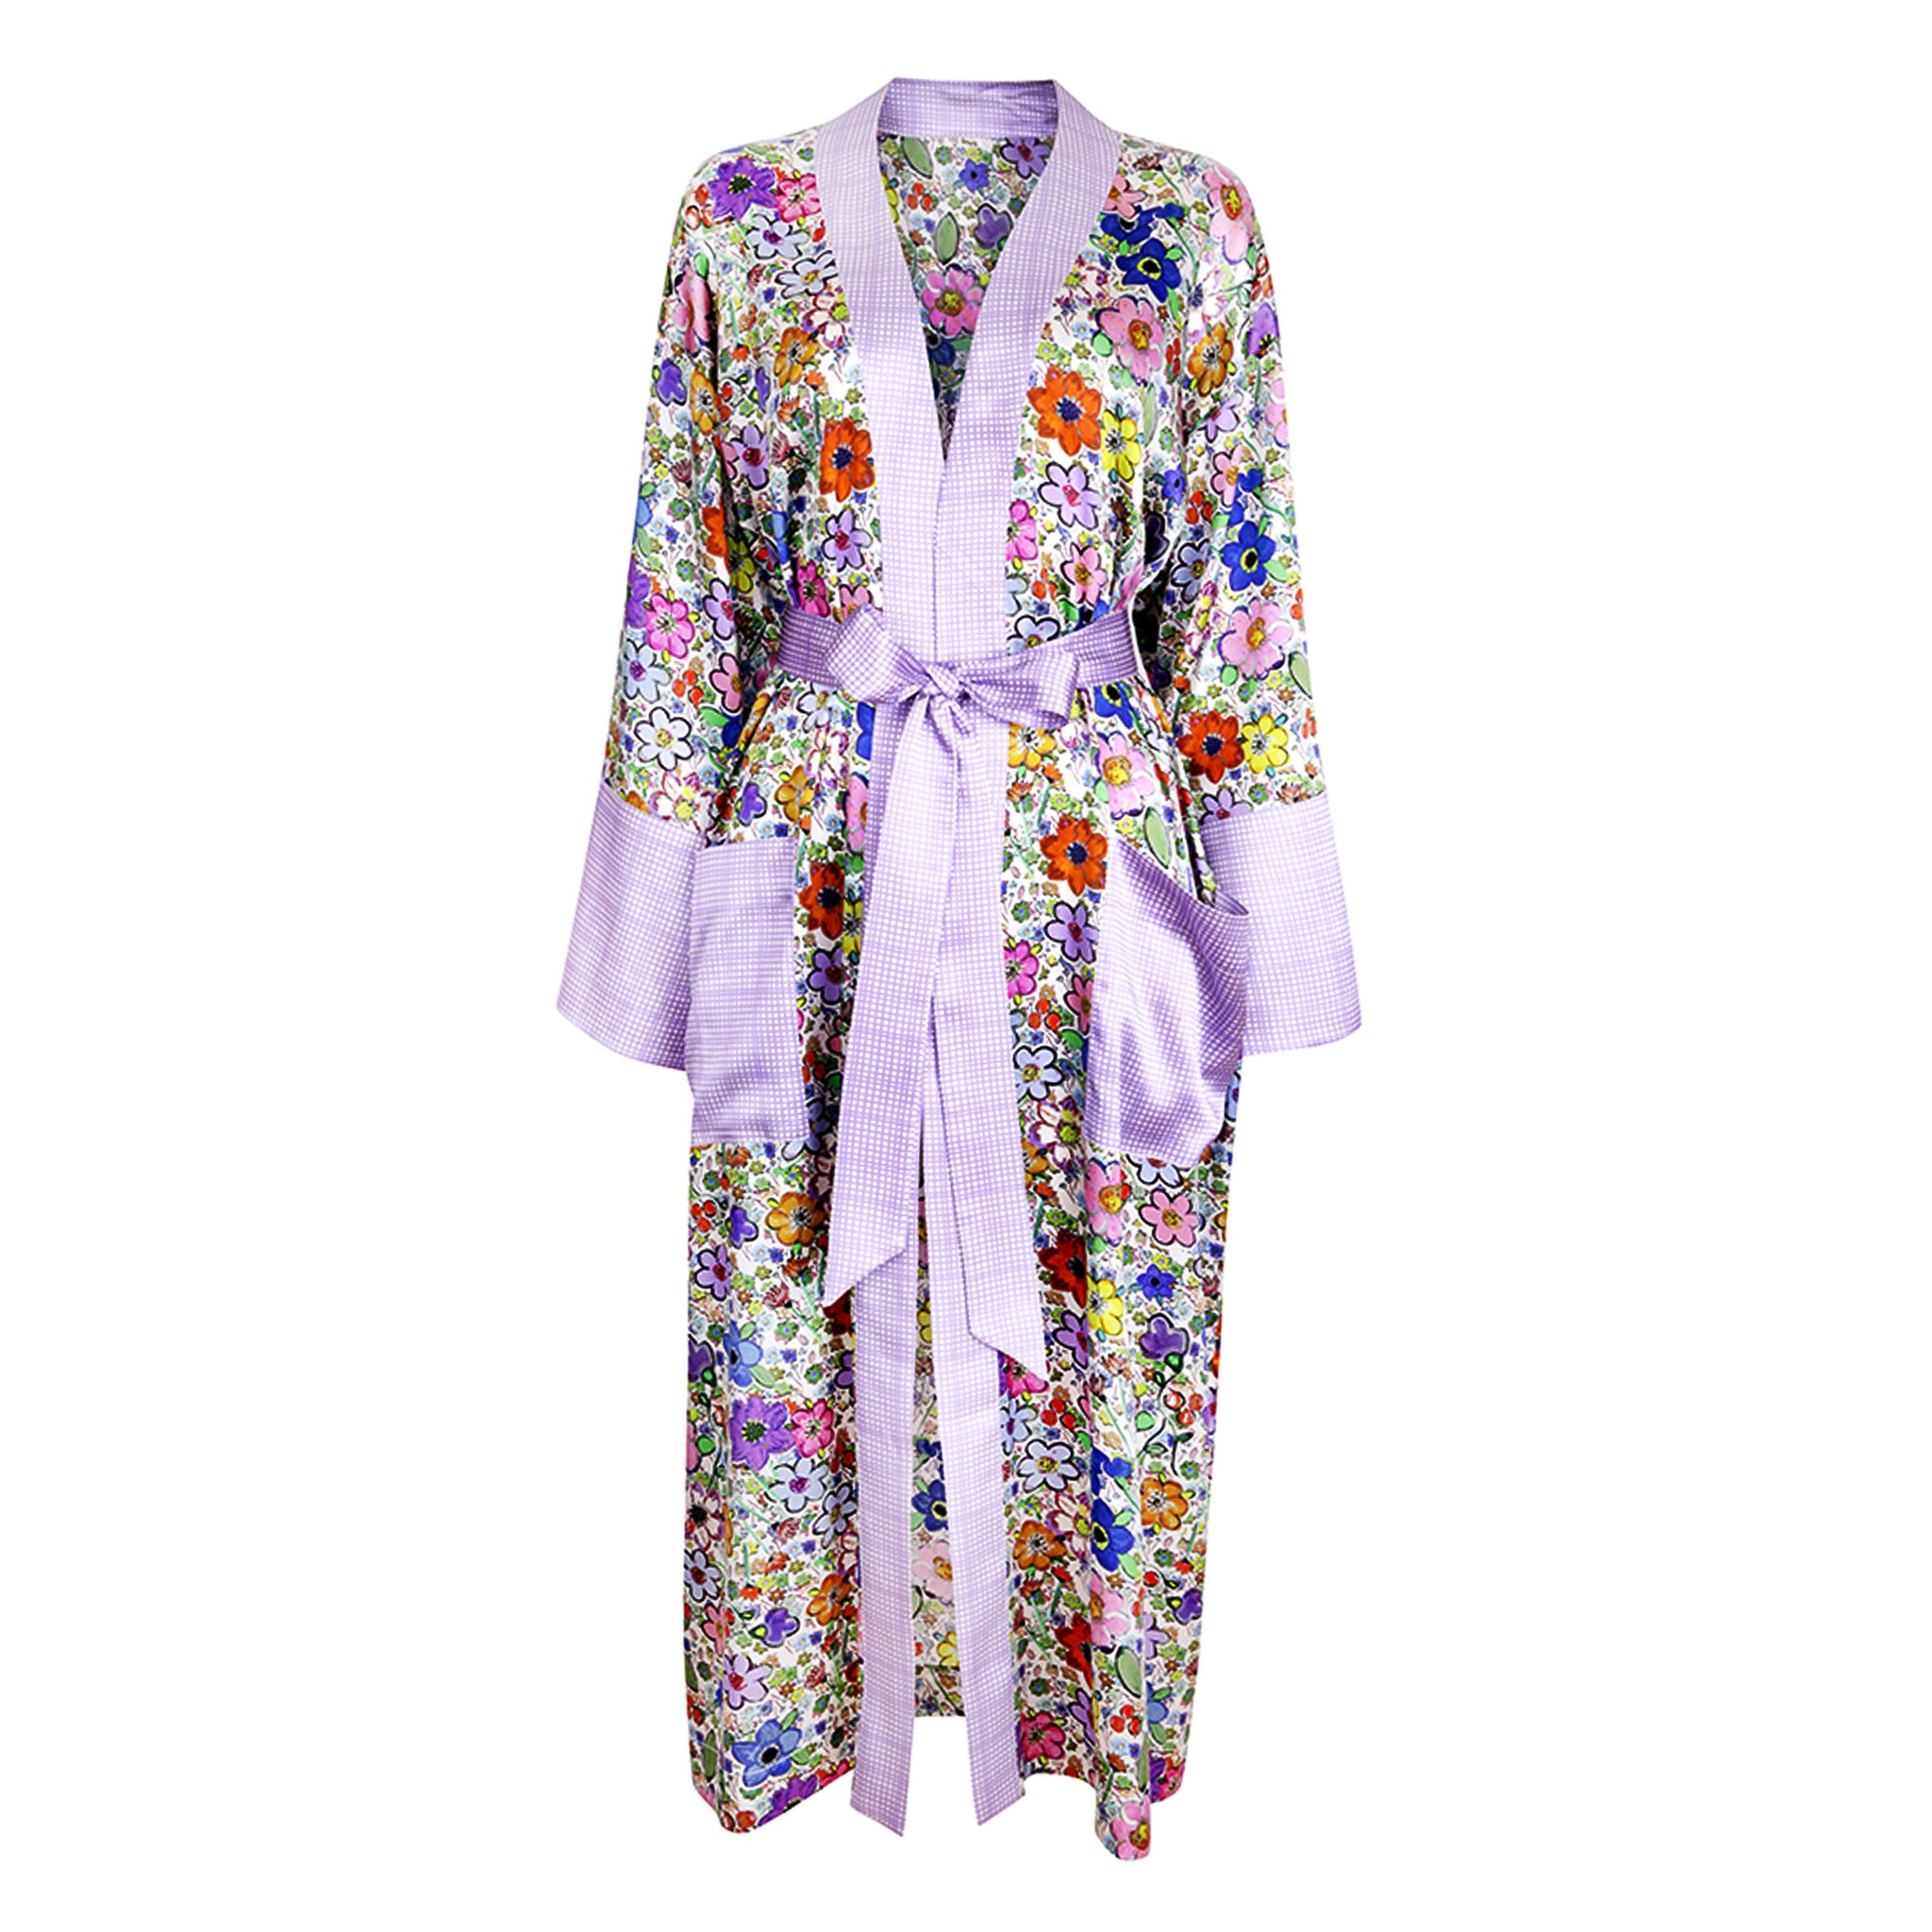 PAINTED-BY-FLORA-ROBE-CUT-OUT.jpg